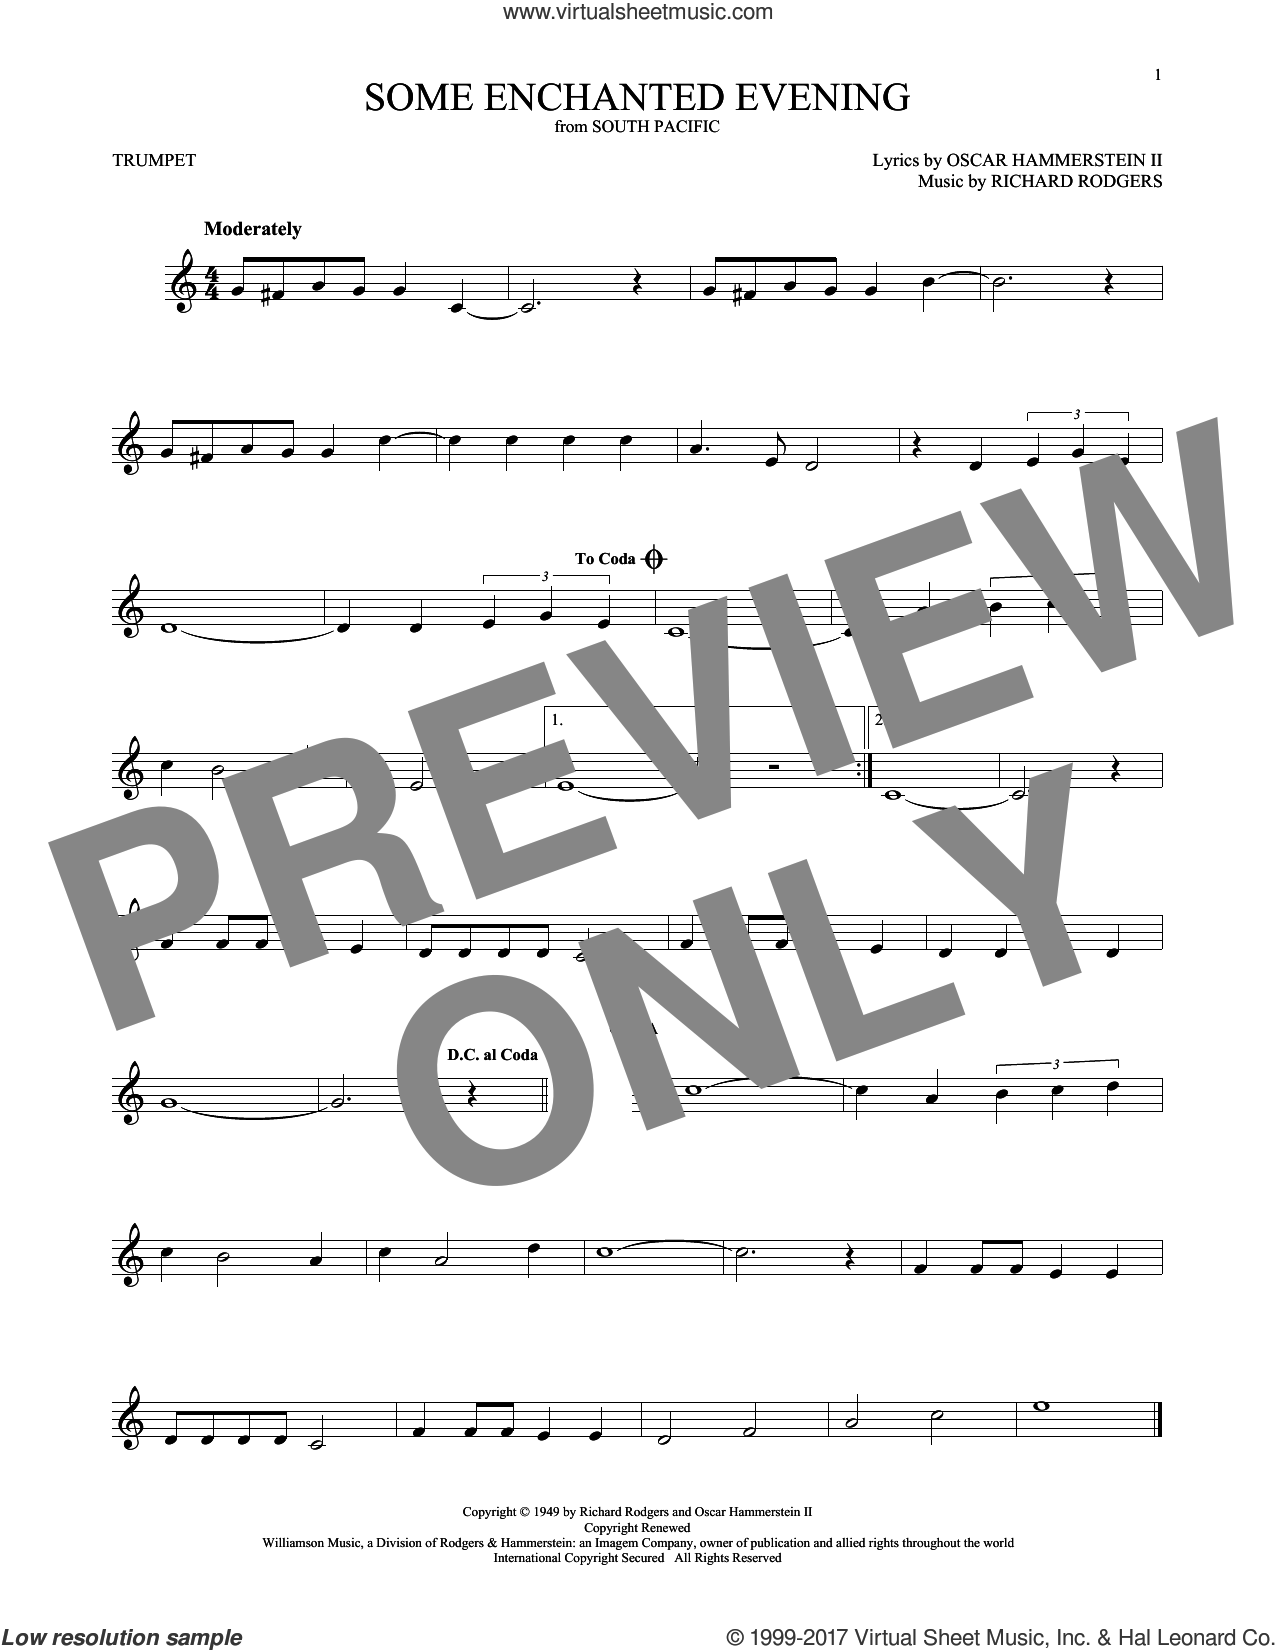 Some Enchanted Evening sheet music for trumpet solo by Rodgers & Hammerstein, Oscar II Hammerstein and Richard Rodgers, intermediate skill level